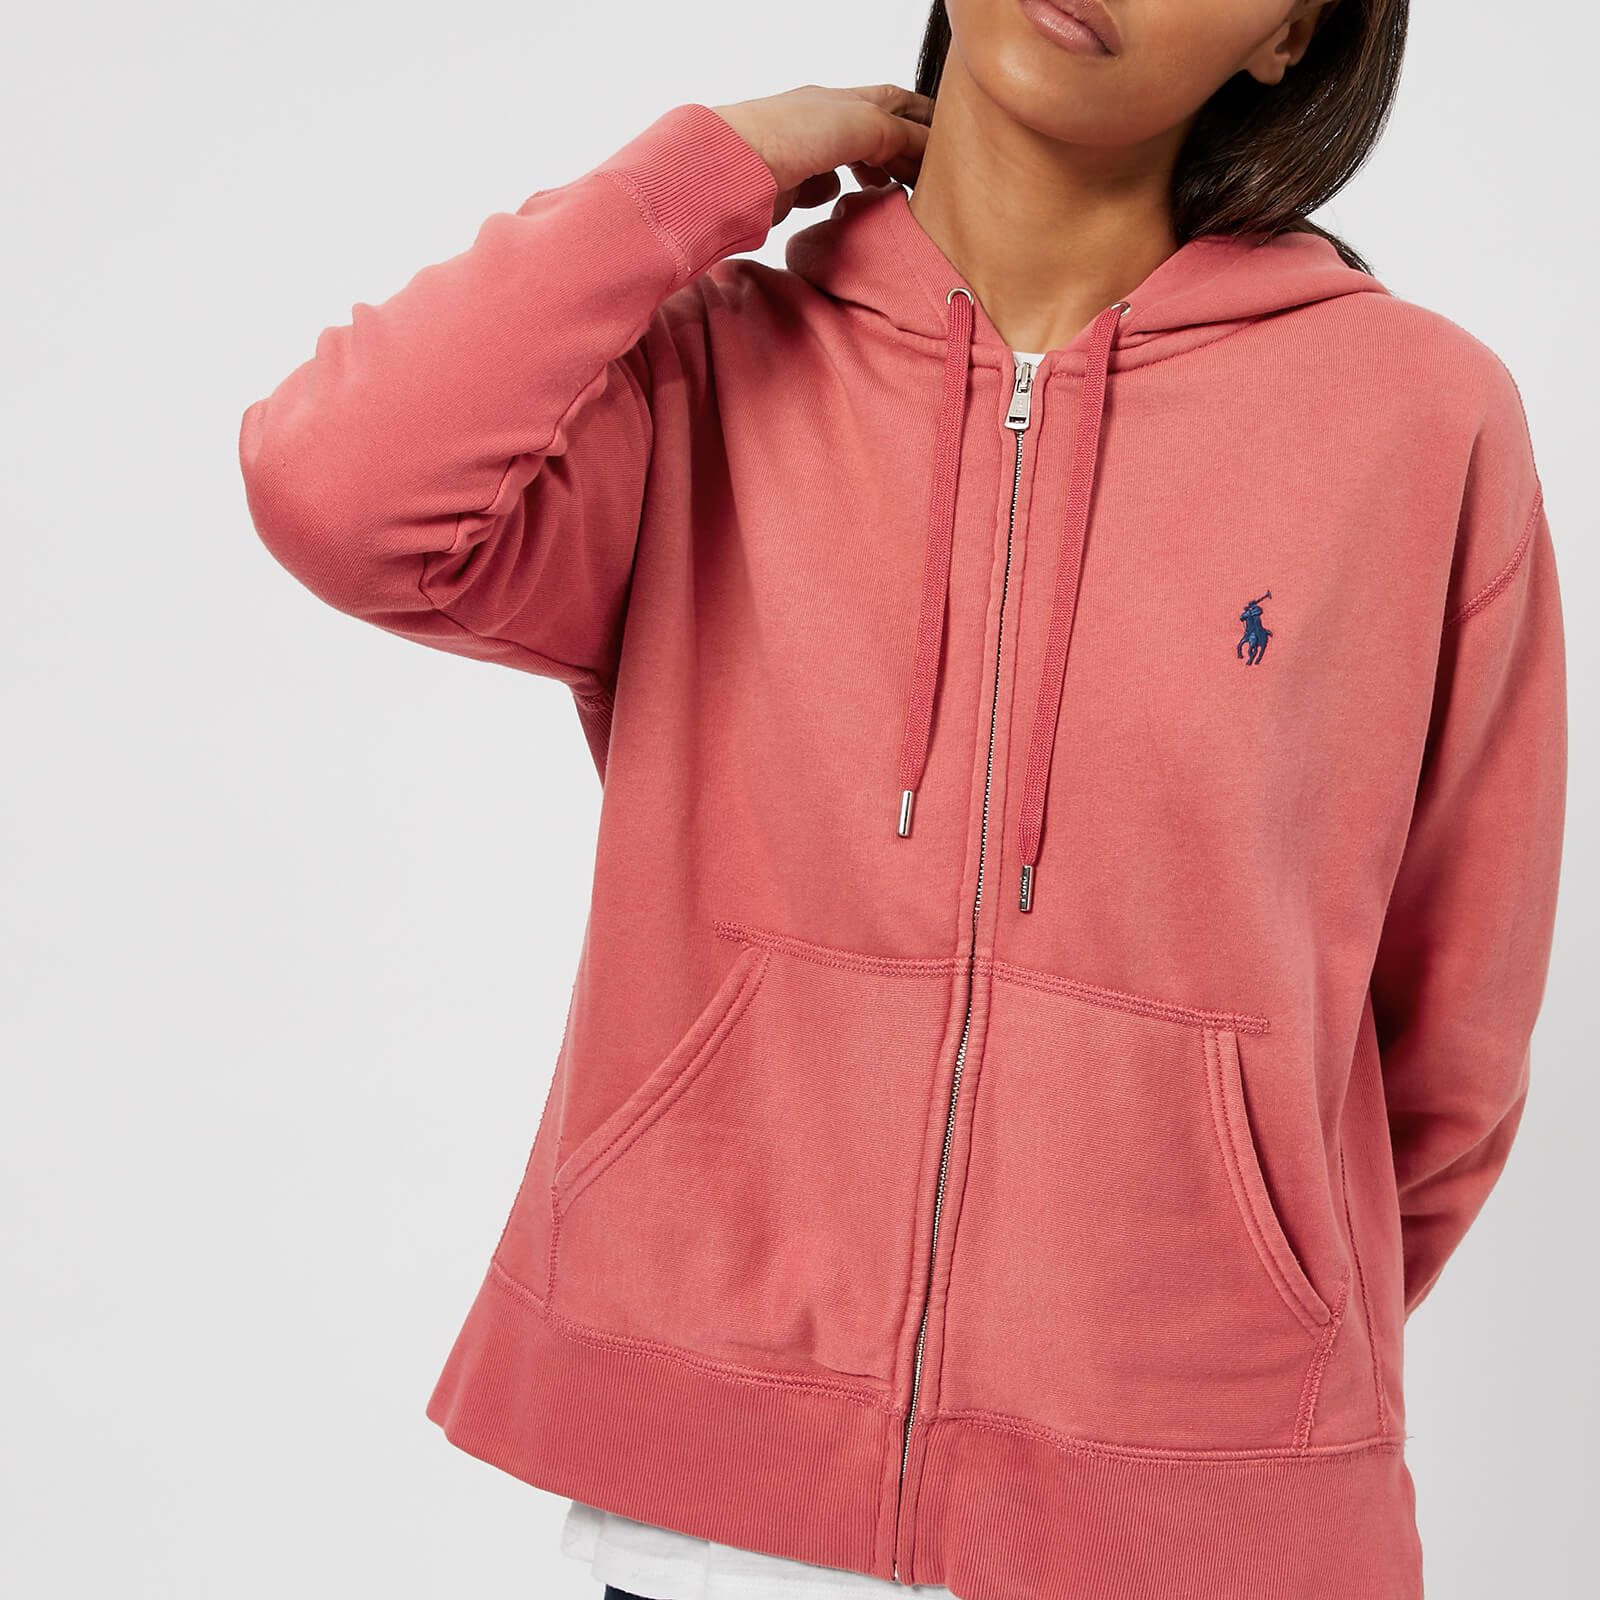 e22bd0b3a87ee Polo Ralph Lauren Women s Logo Hooded Sweatshirt - Sun Red - Free UK  Delivery over £50